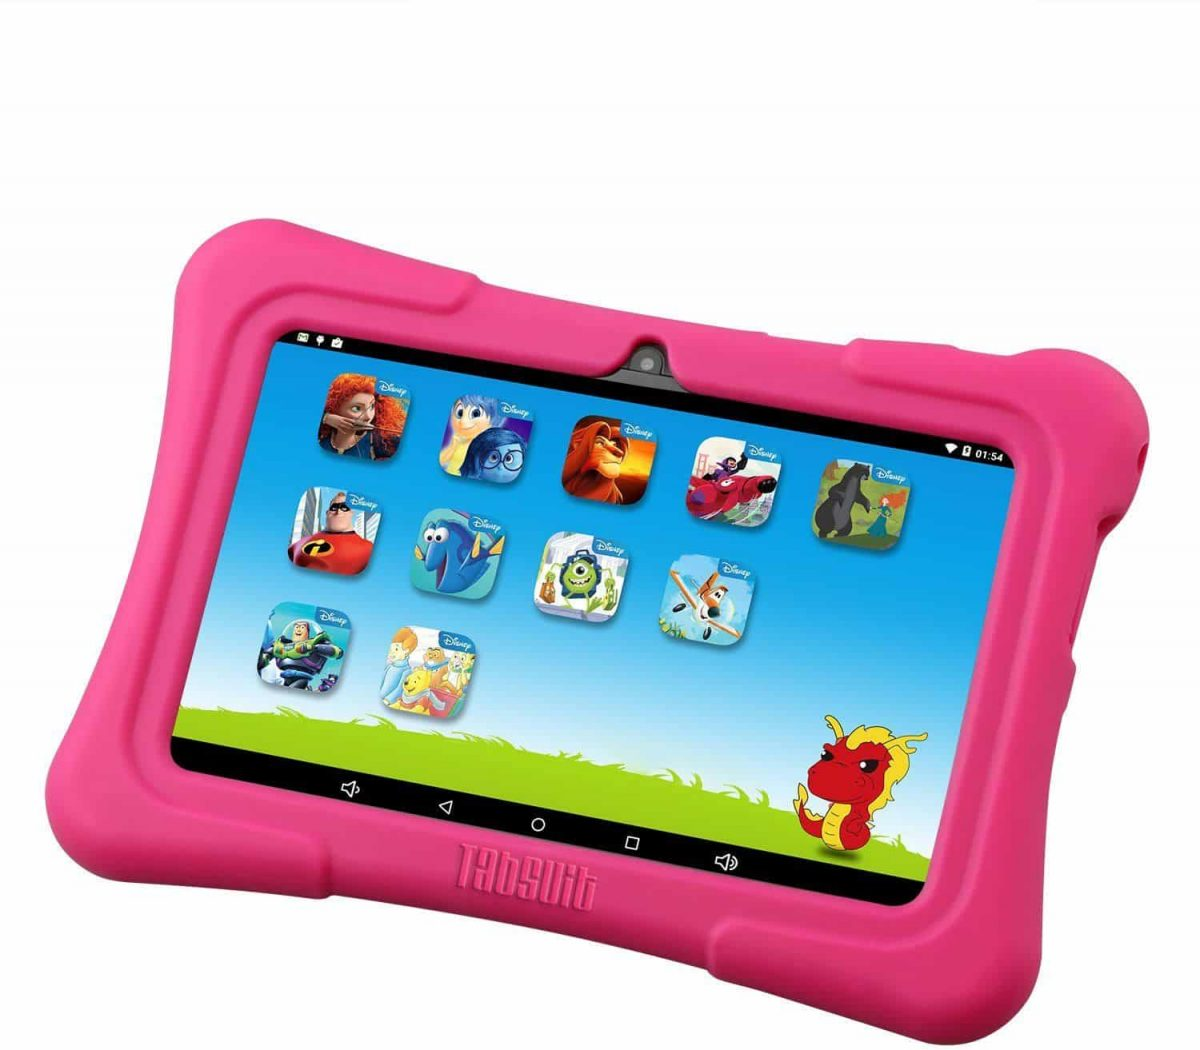 Dragon Touch Y88X Plus (2018) 7-inch tablet